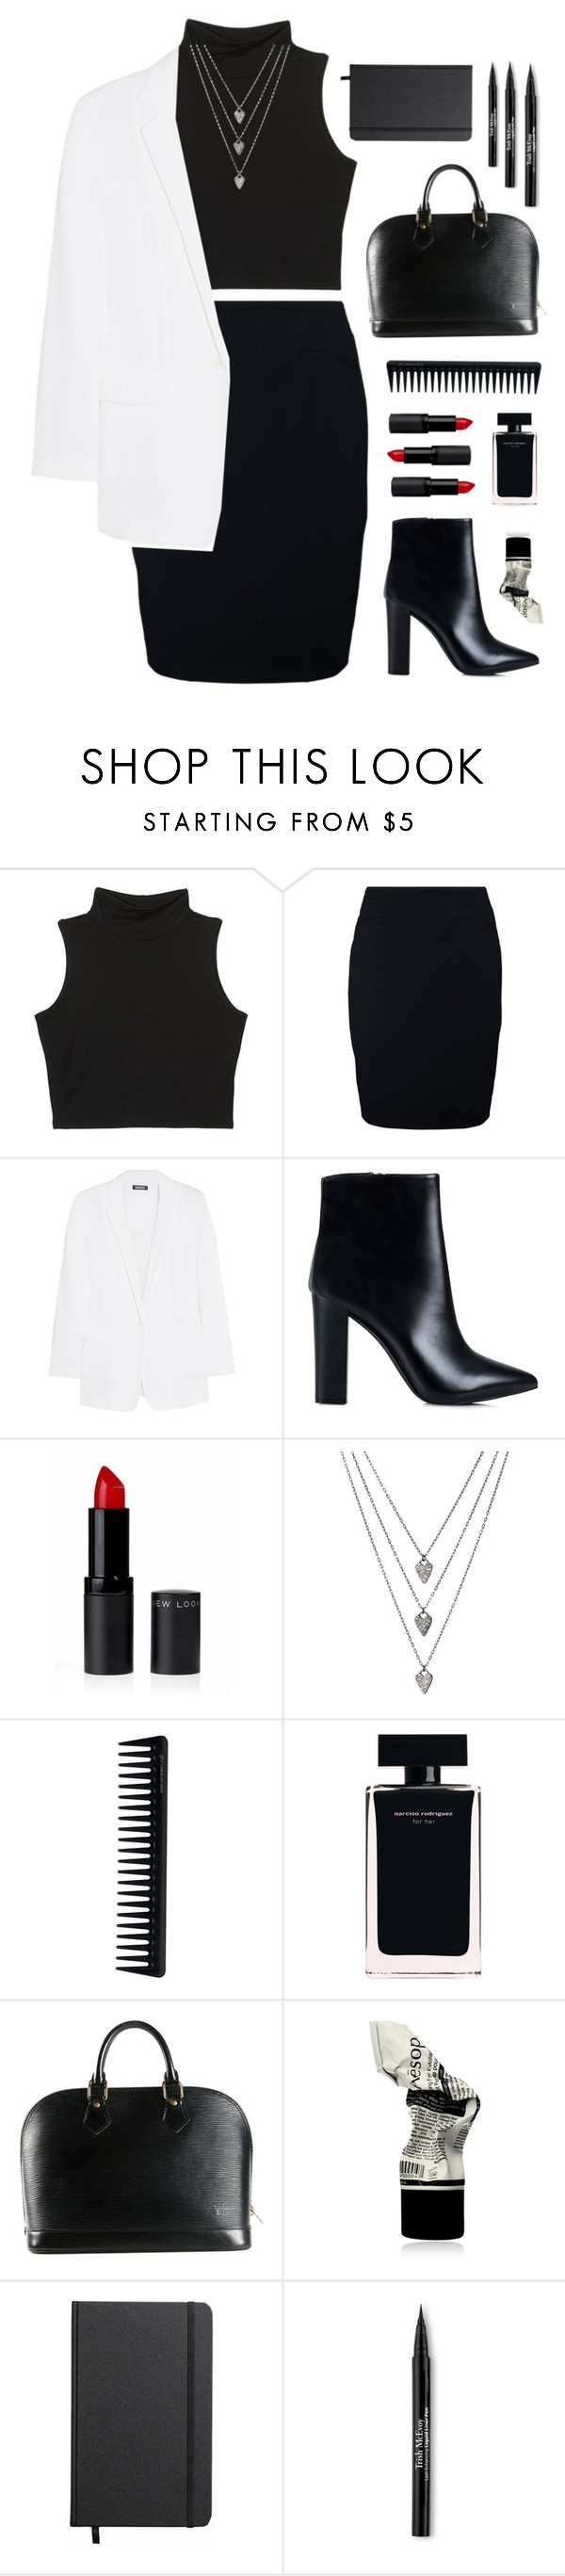 """boss"" by metda ❤ liked on Polyvore featuring Sir Oliver, DKNY, Nly Shoes, GHD, Narciso Rodriguez, Louis Vuitton, Aesop, Shinola, Trish McEvoy and WorkWear"